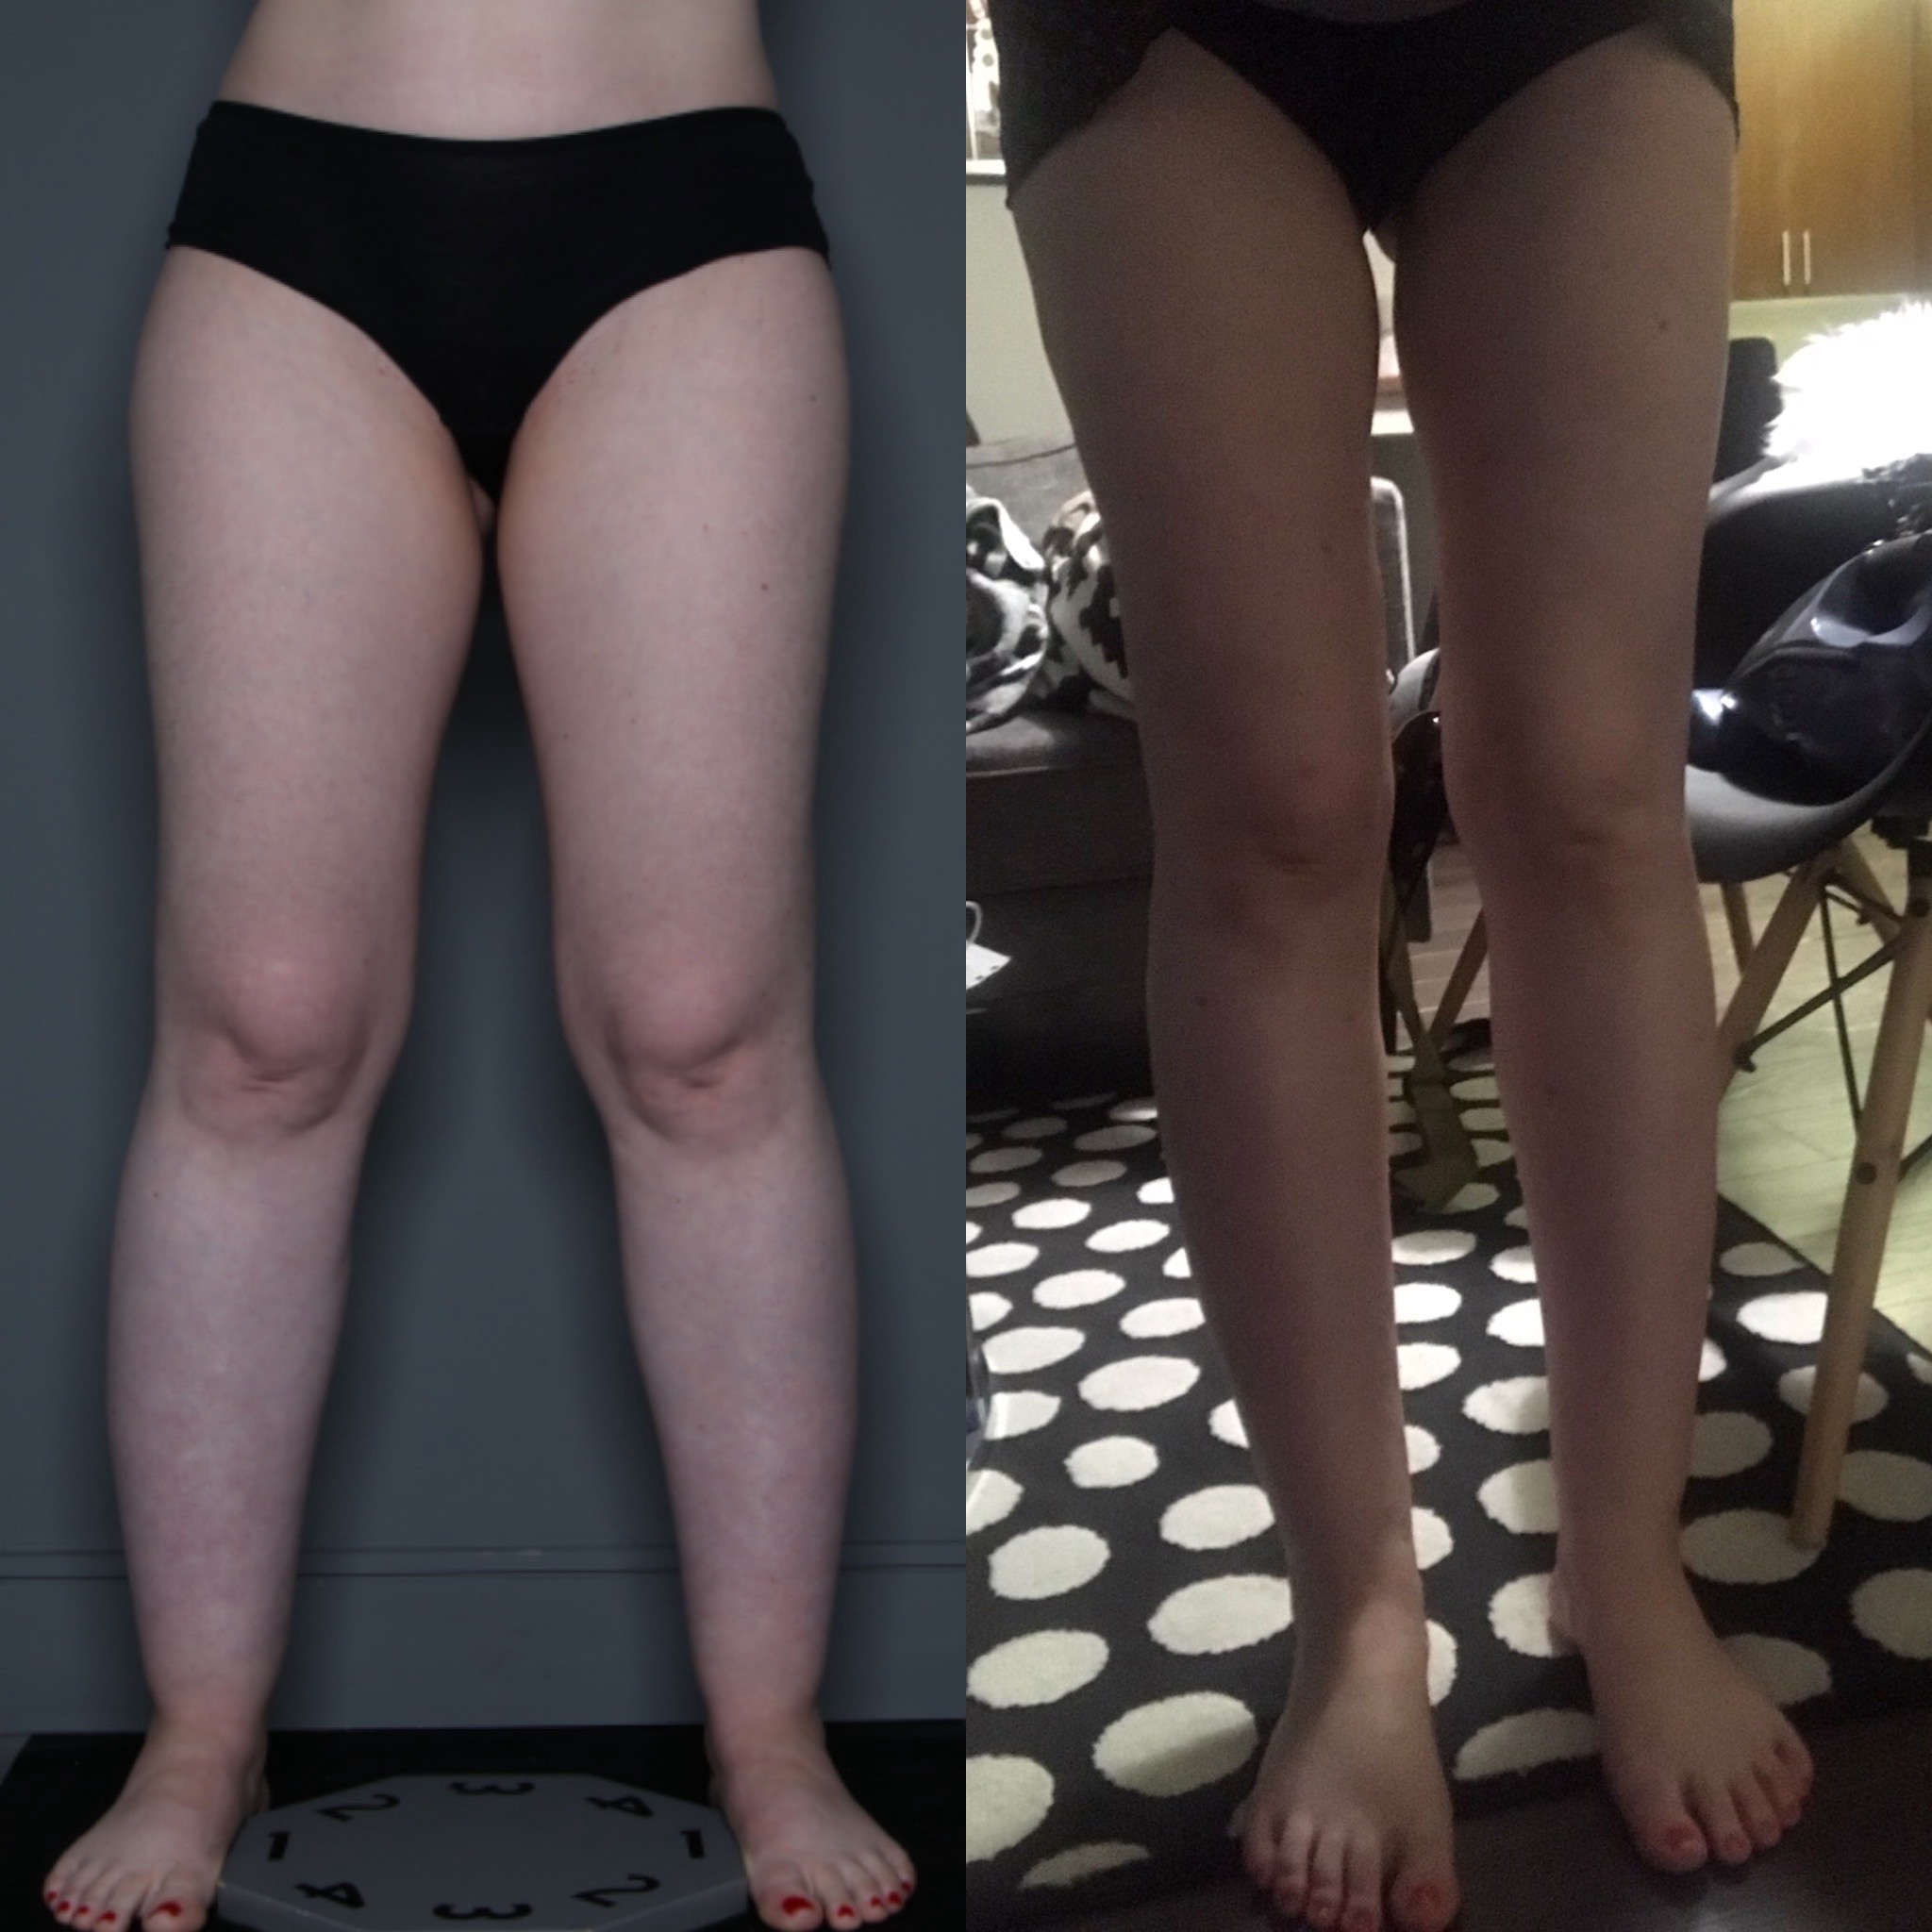 Recovering From Leg Liposuction Everything You Need To Know To Have A By Carol Nogueira Jul 2020 Medium